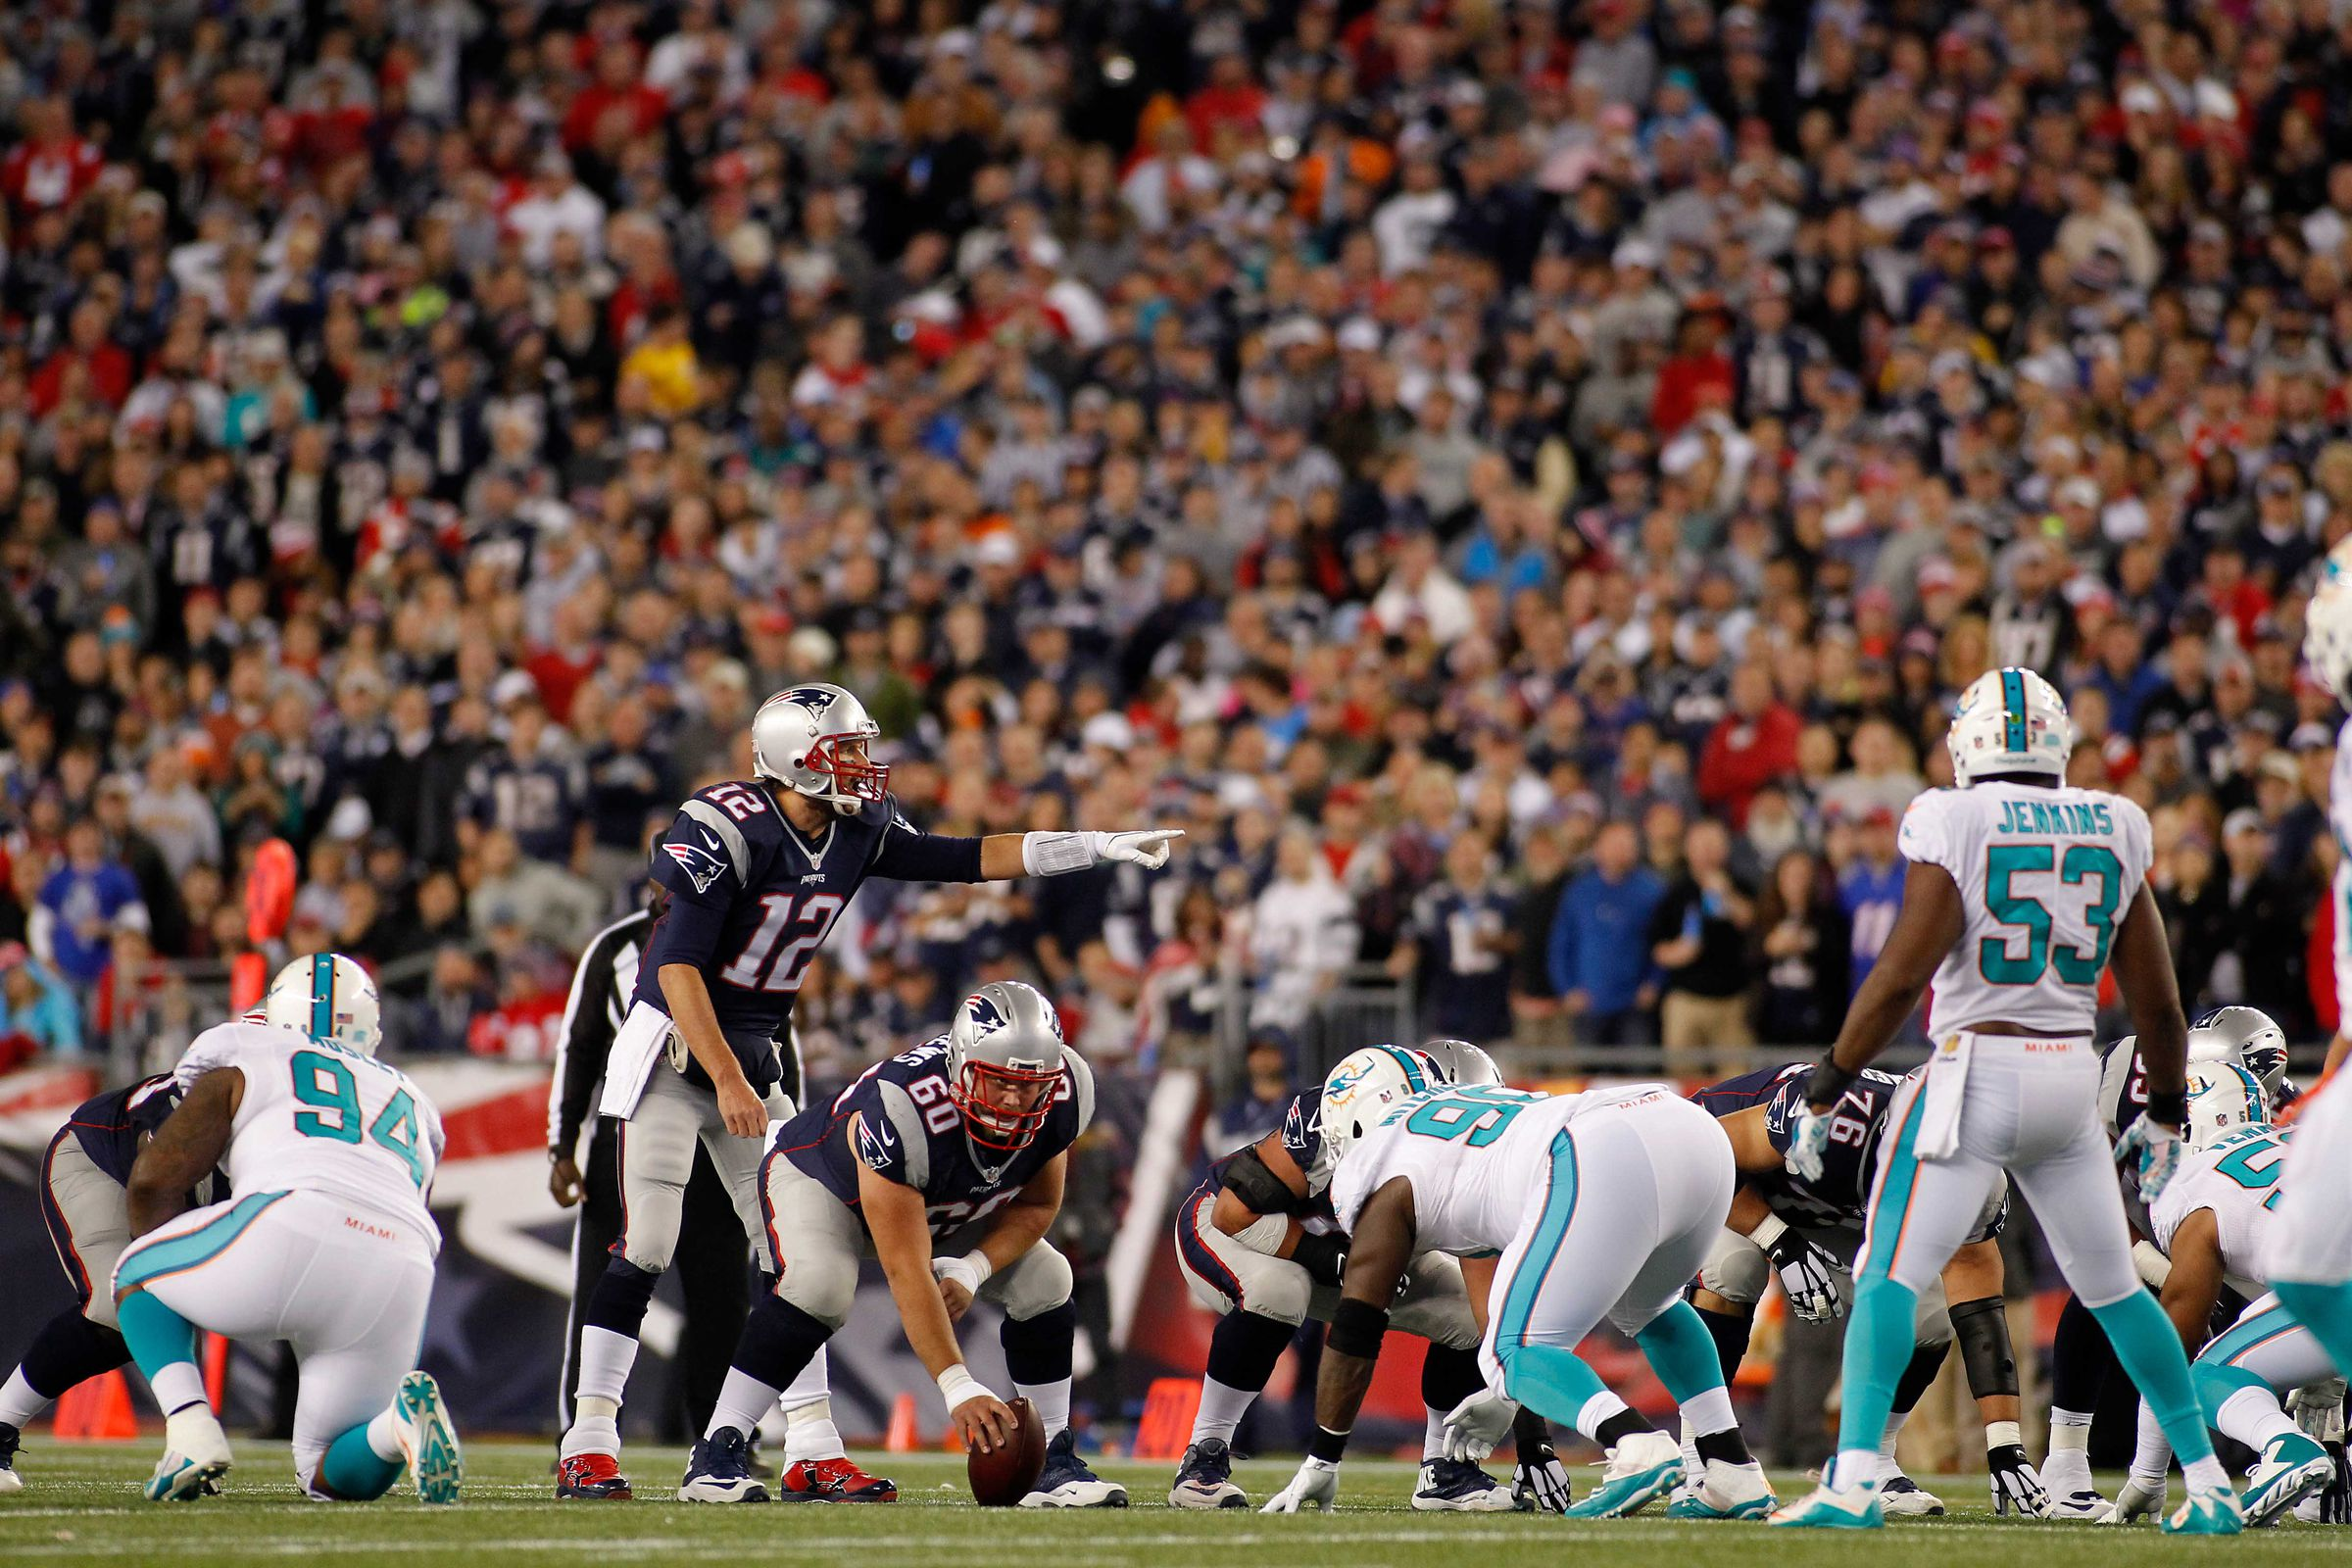 patriots dolphins game live stream free football score odds